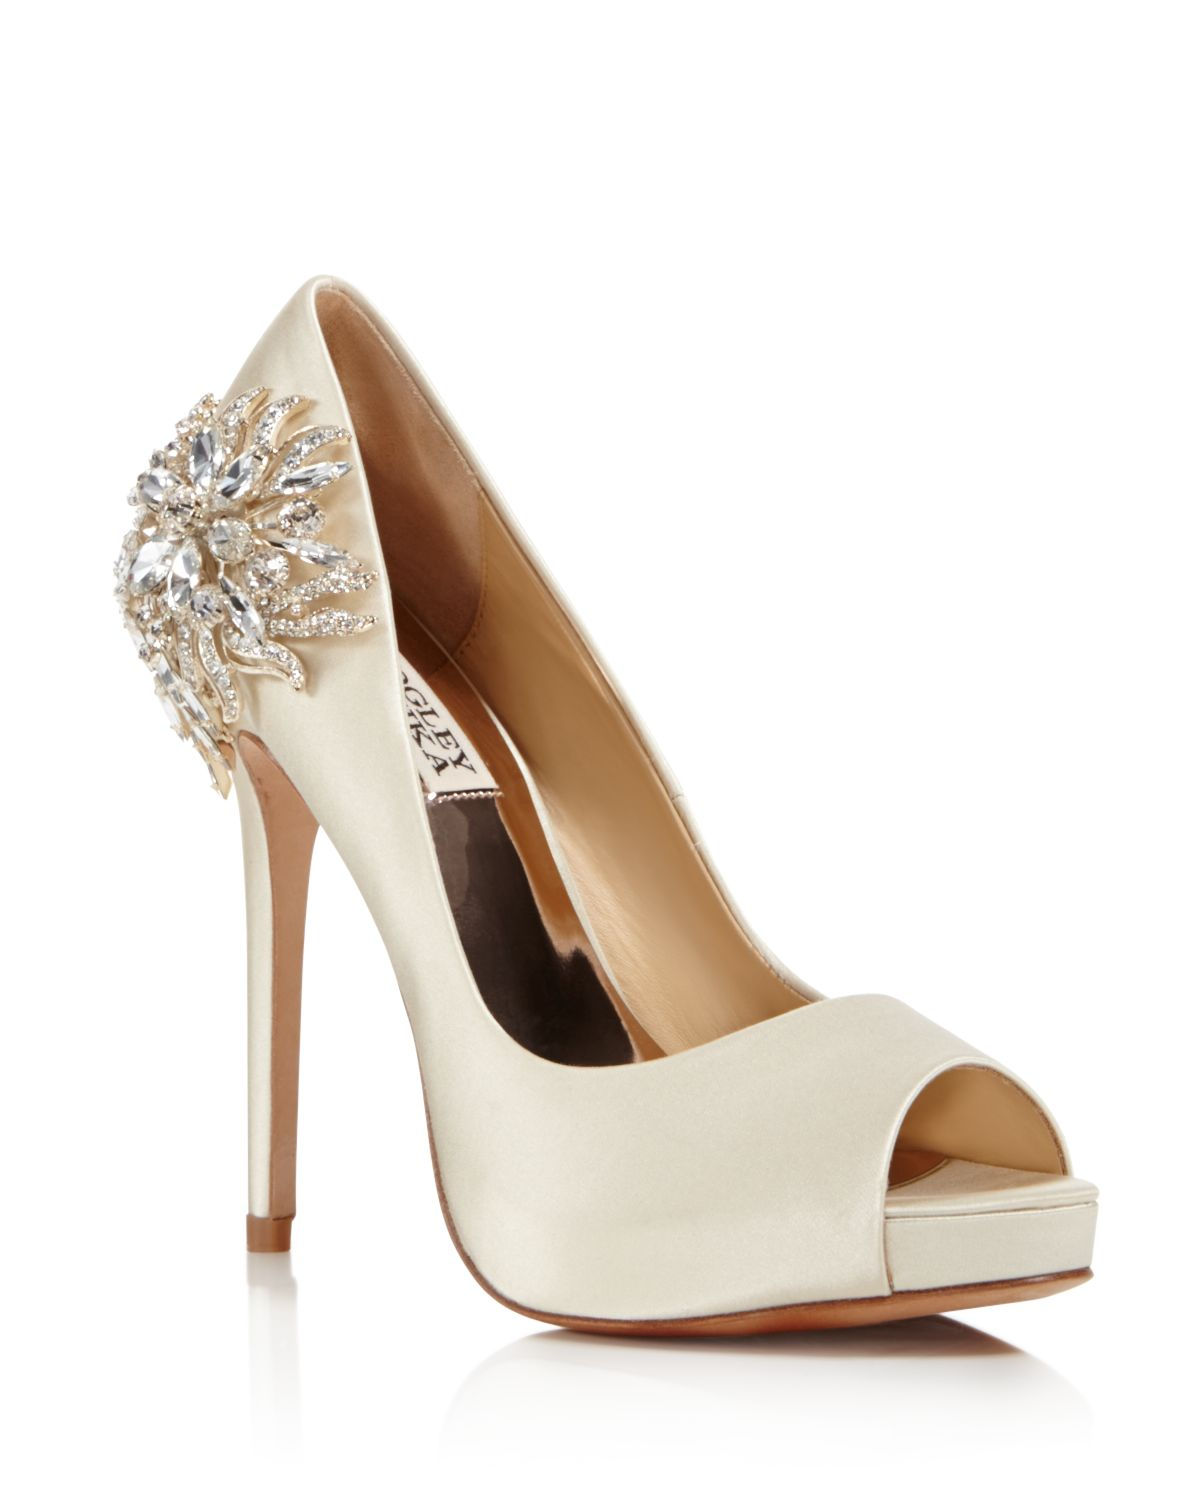 Badgley Mischka Women's Marcia Embellished Satin Peep Toe Pumps